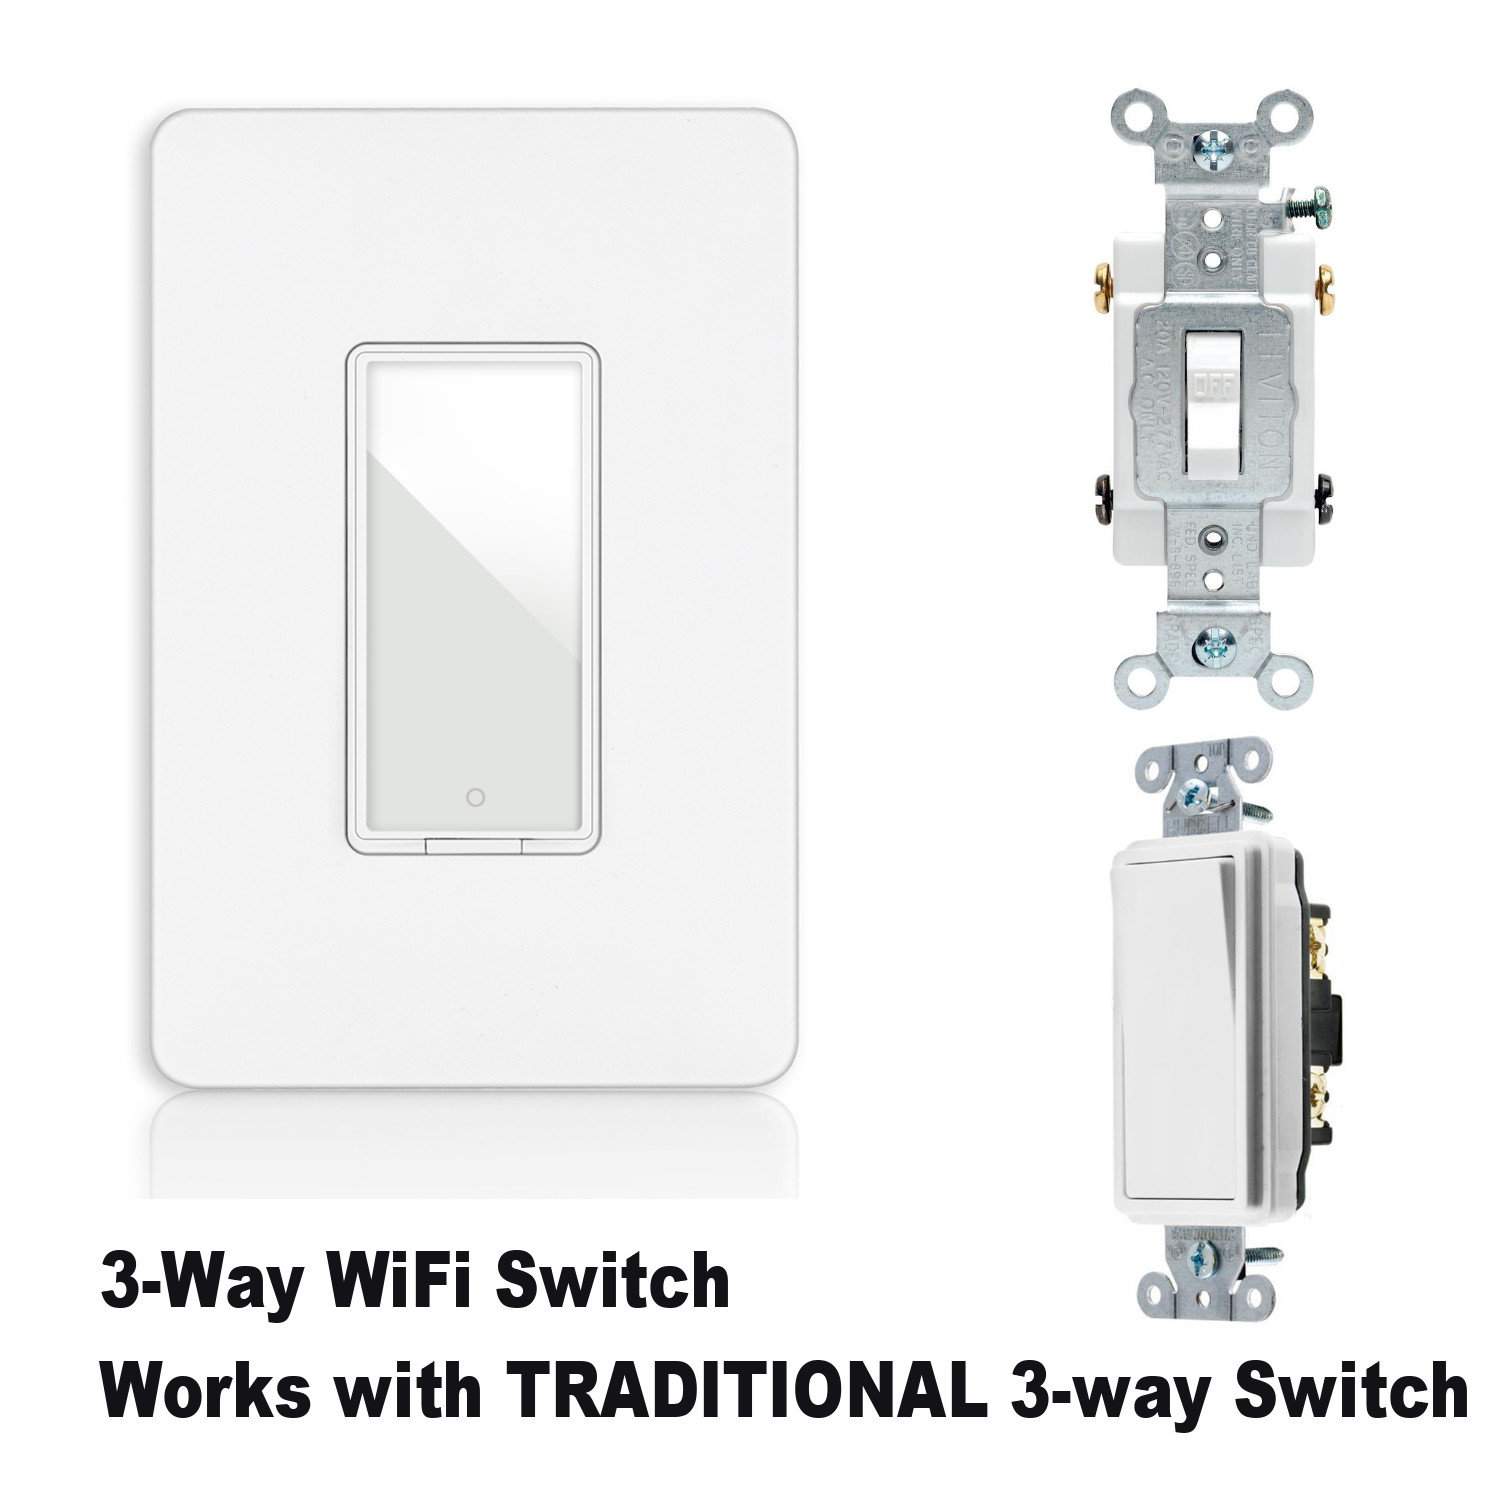 Smart non-dimmer Switch (3-way) | martinjerry